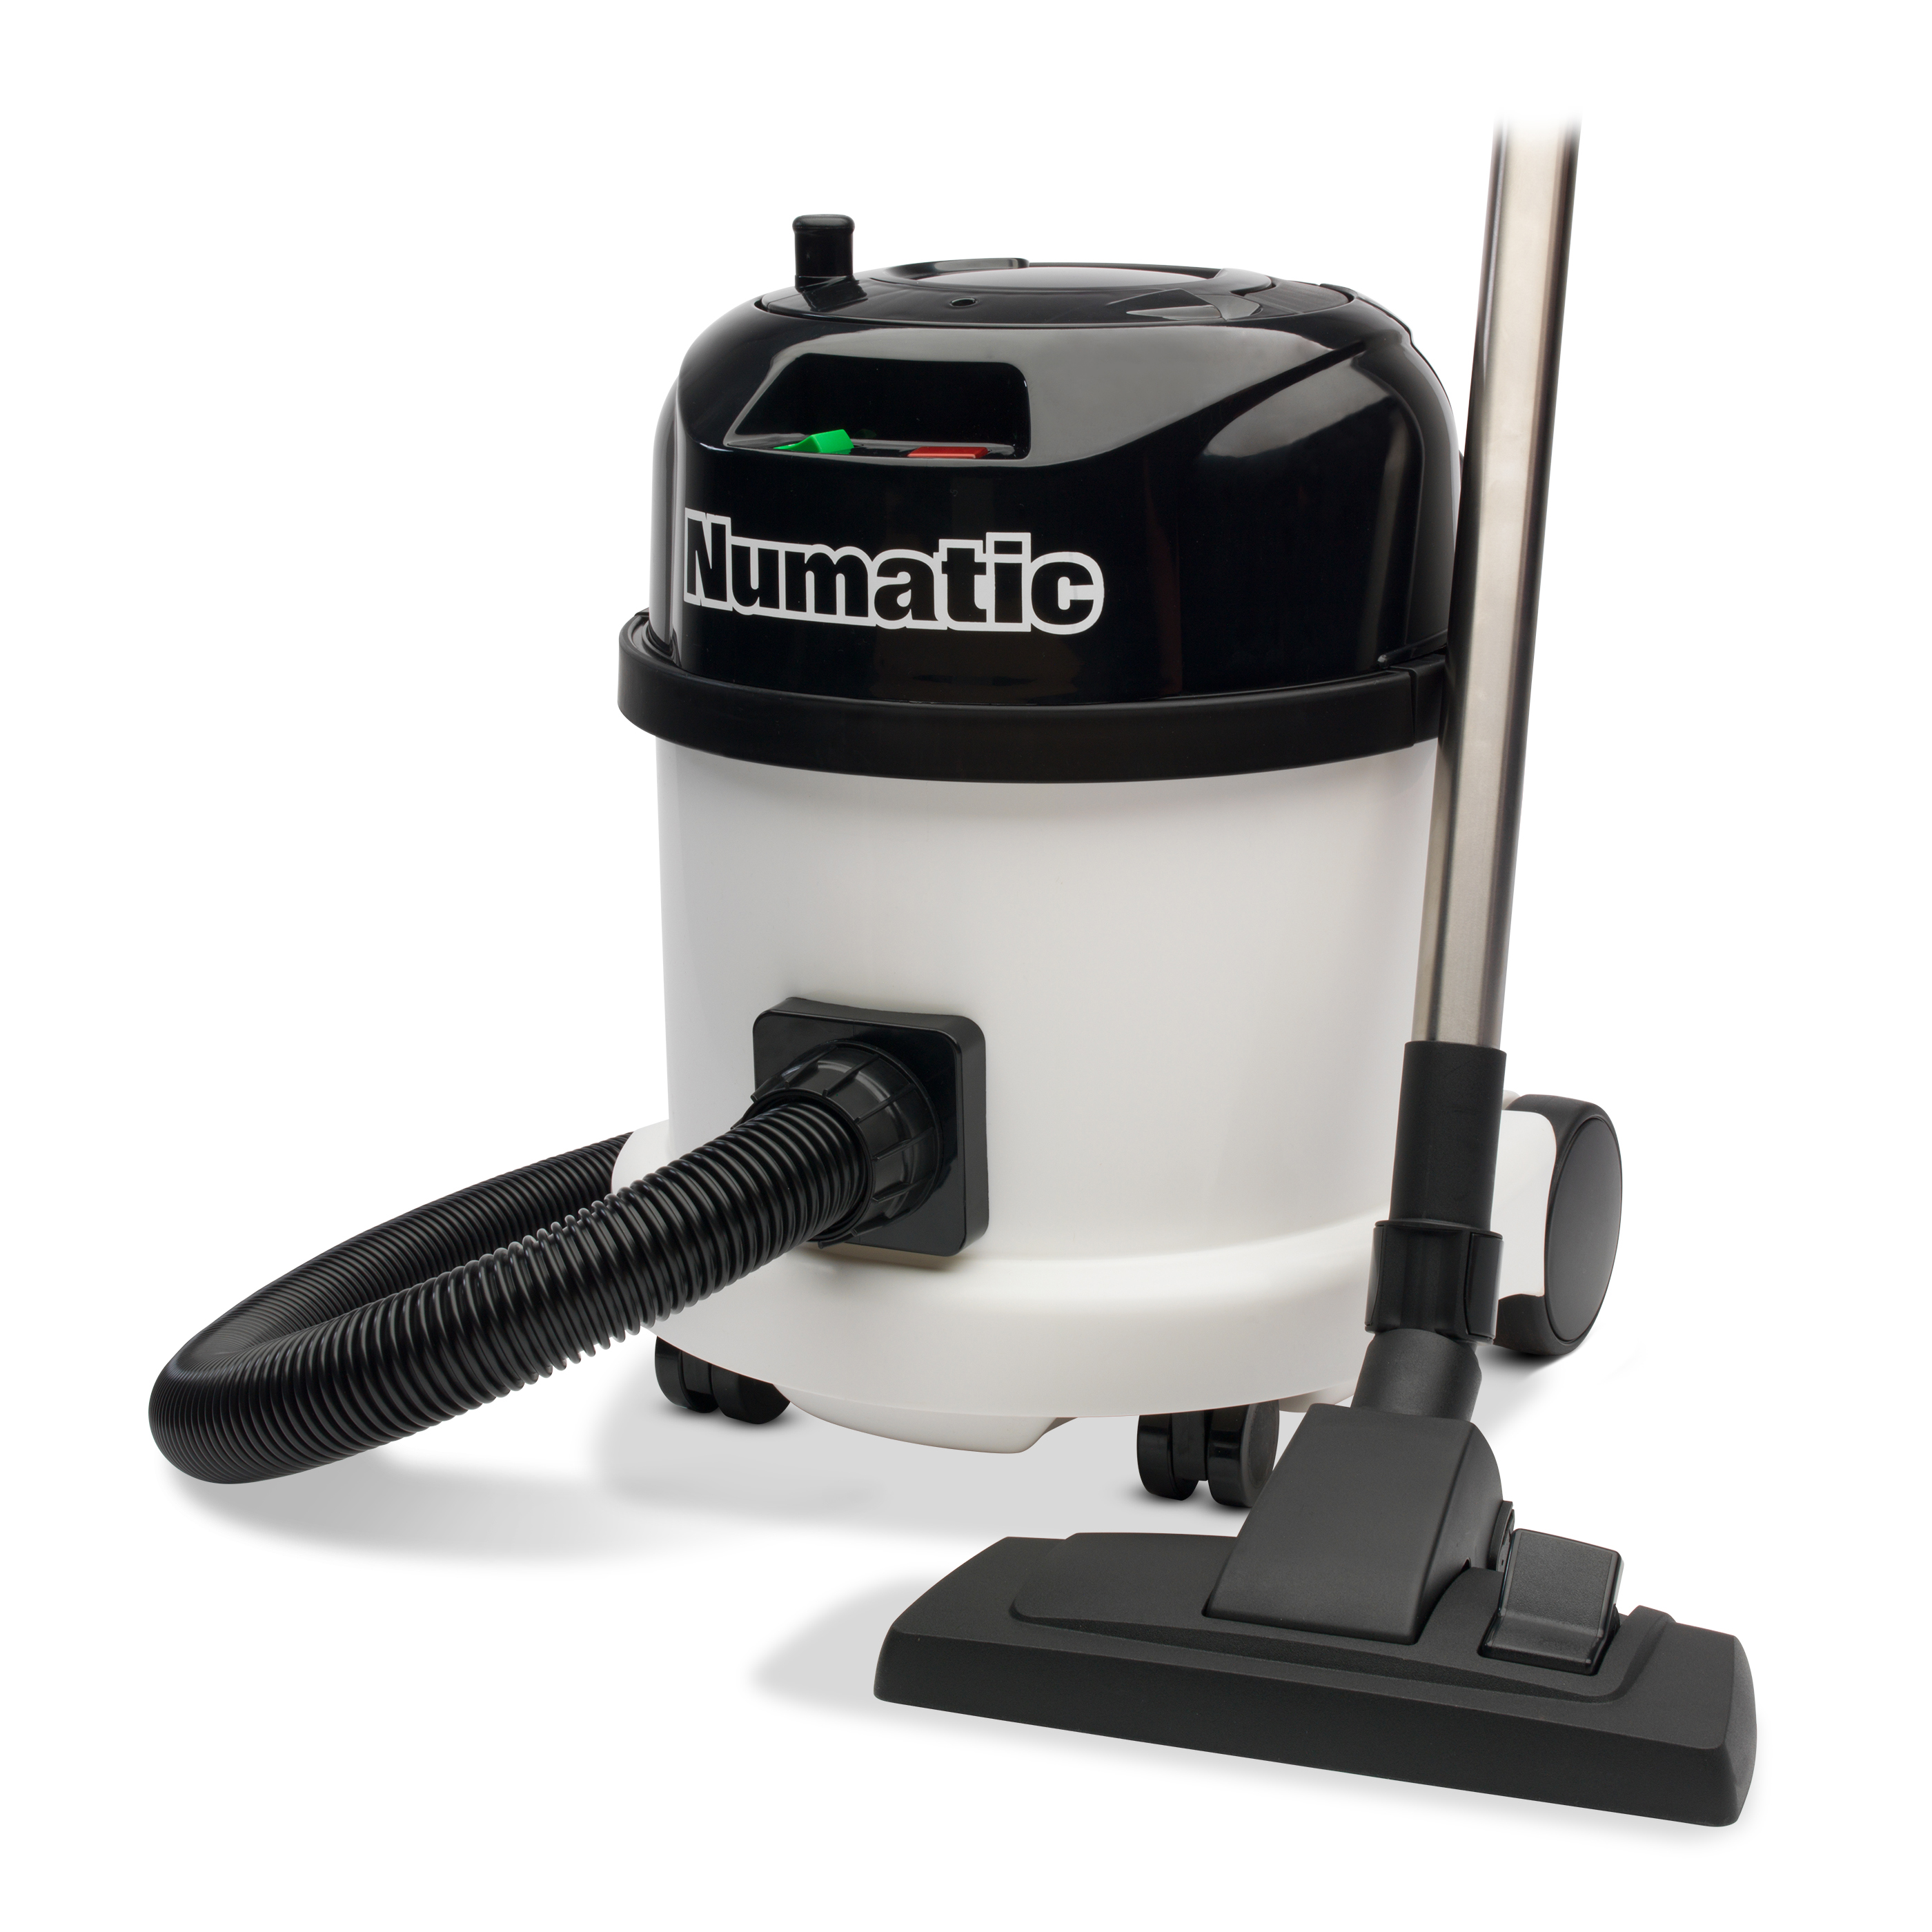 Numatic Vacuum Cleaner PPH 320-11 Hepa Flo Filtration Ref 900488